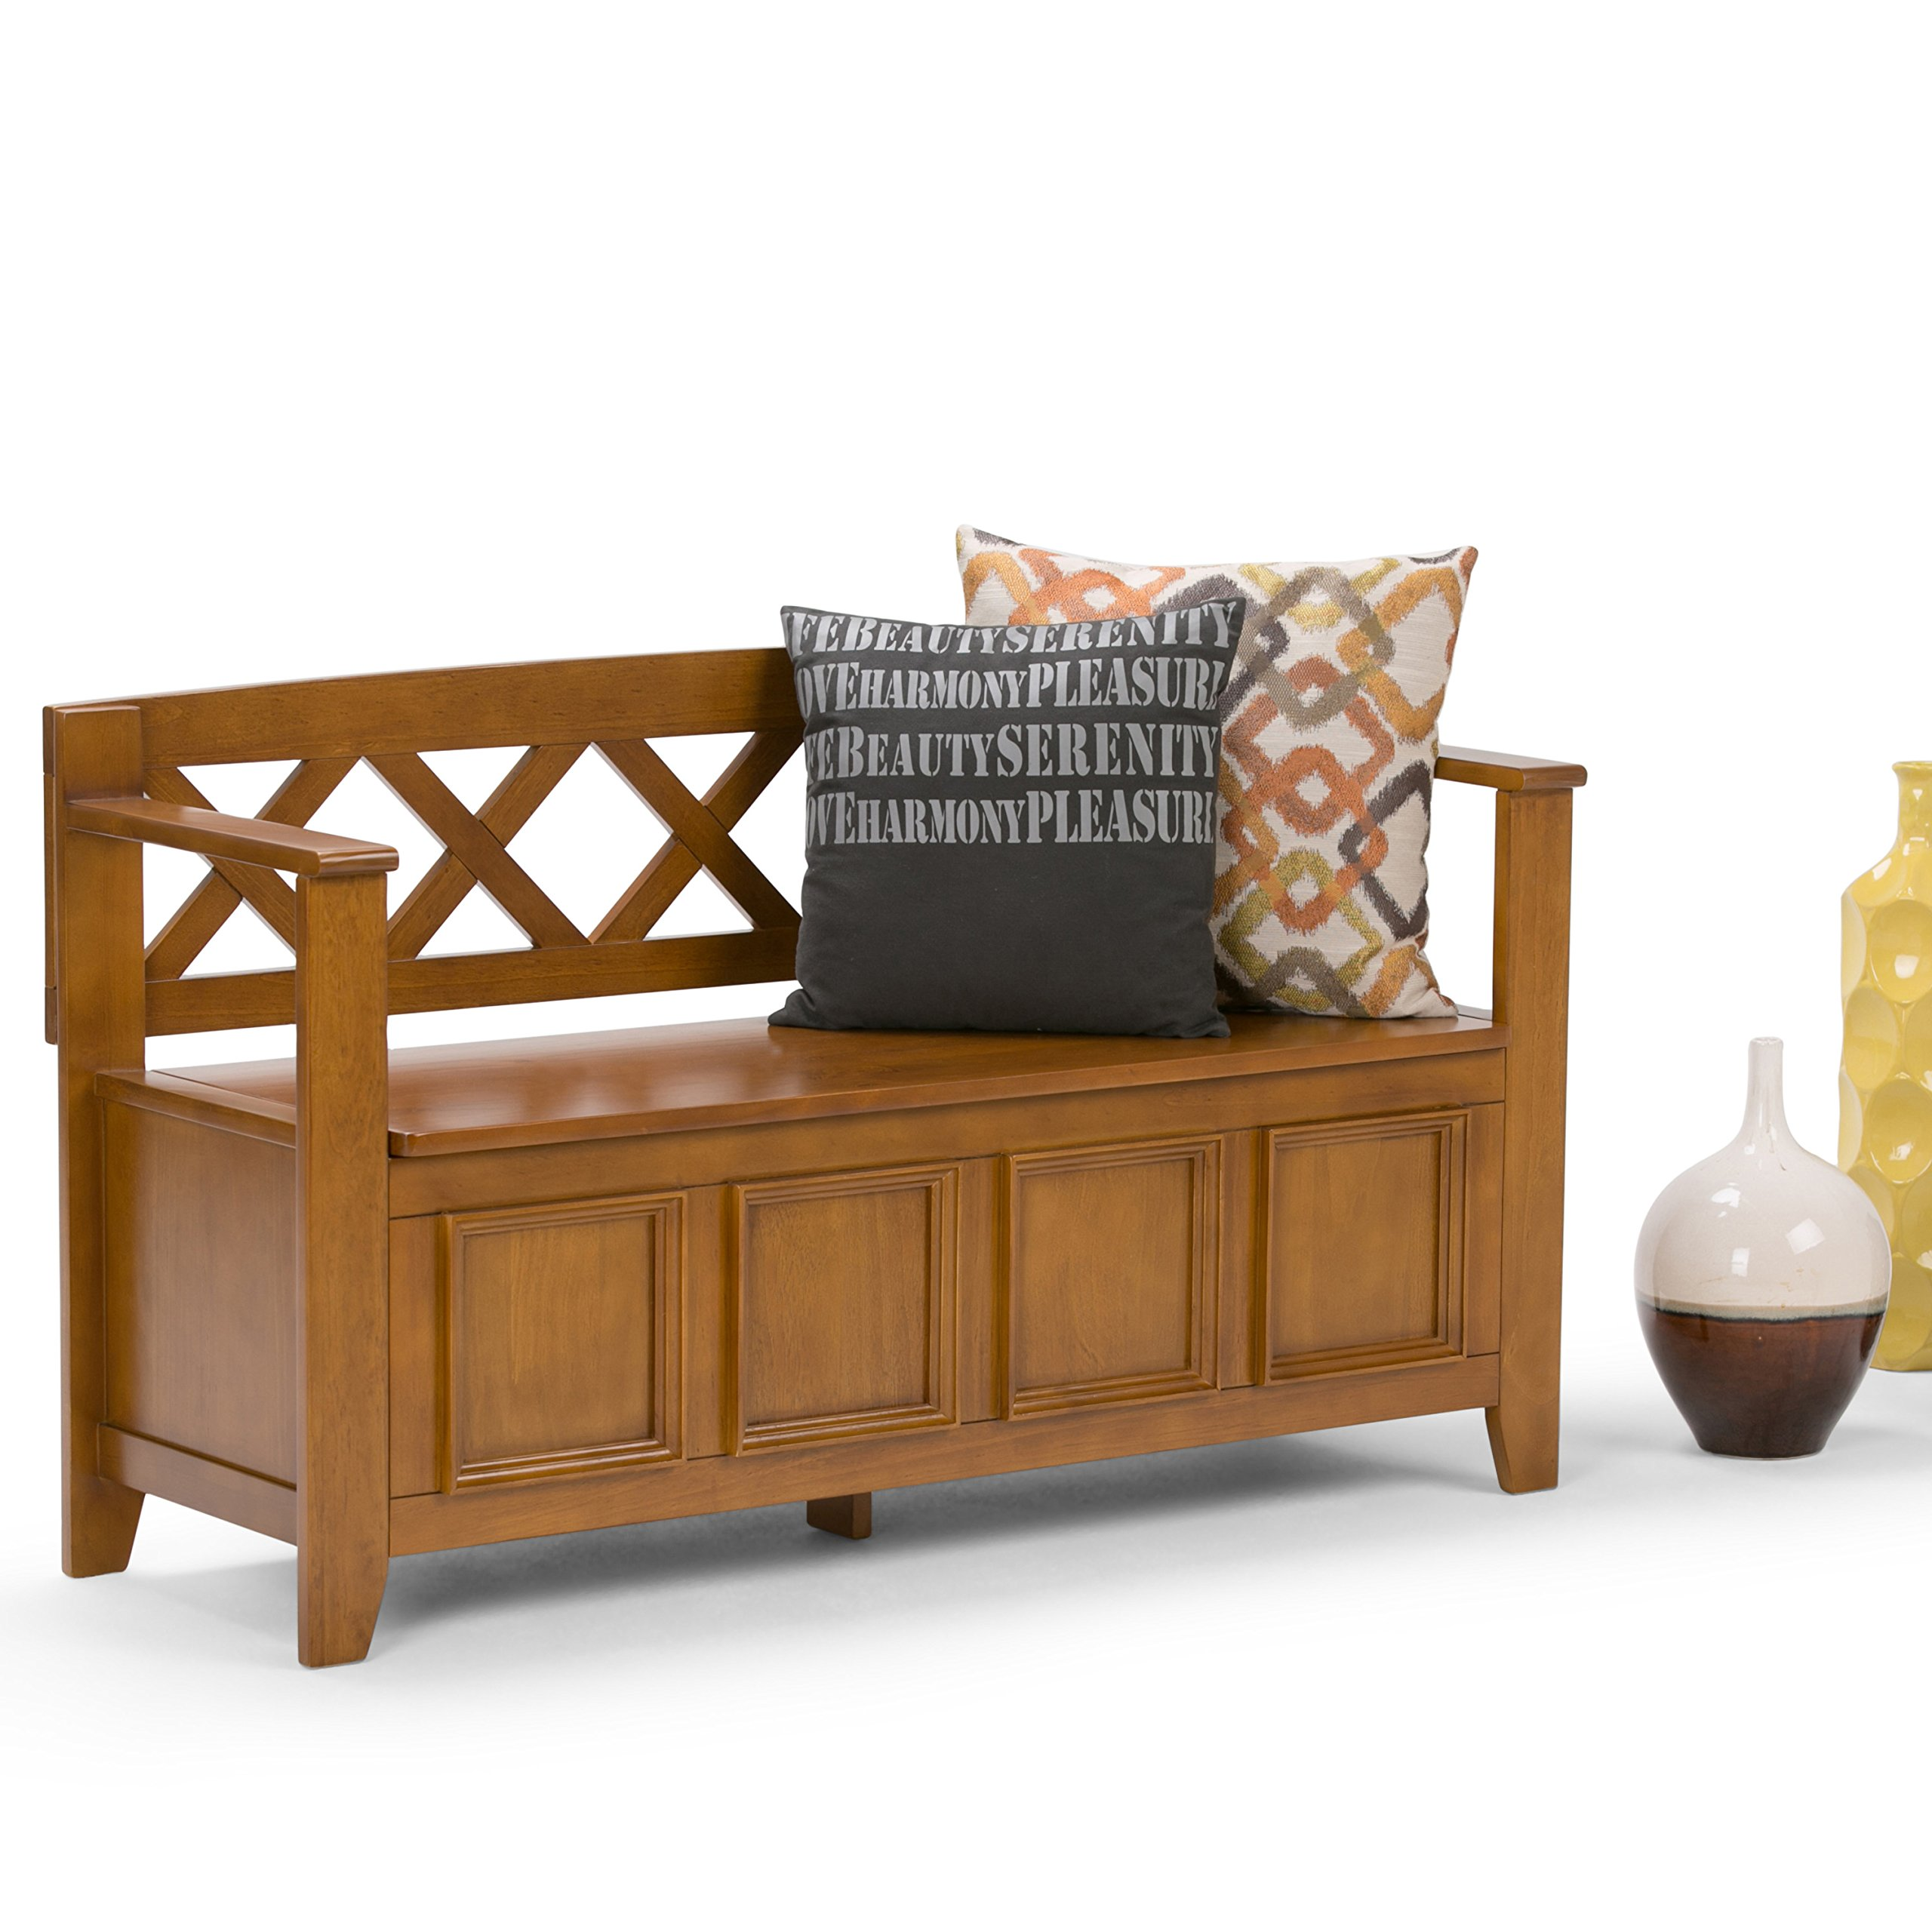 Simpli Home Amherst Solid Wood Entryway Storage Bench, Light Avalon Solid Wood Brown by Simpli Home (Image #2)